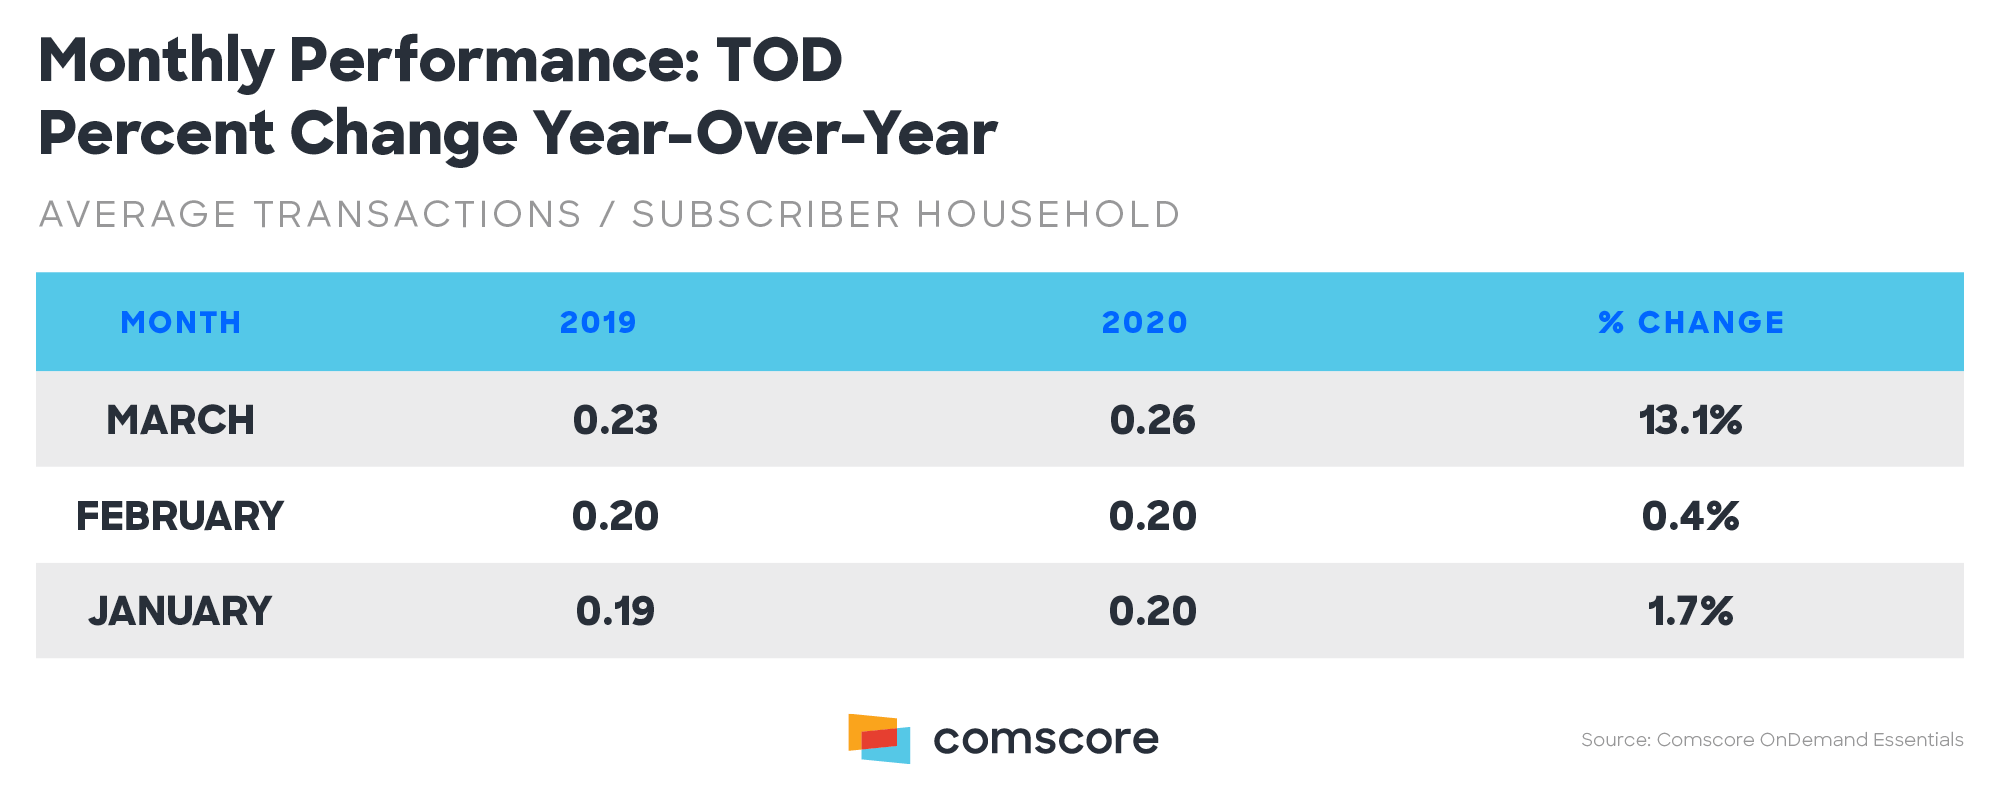 Monthly Performance All TOD Percent Change Year over Year